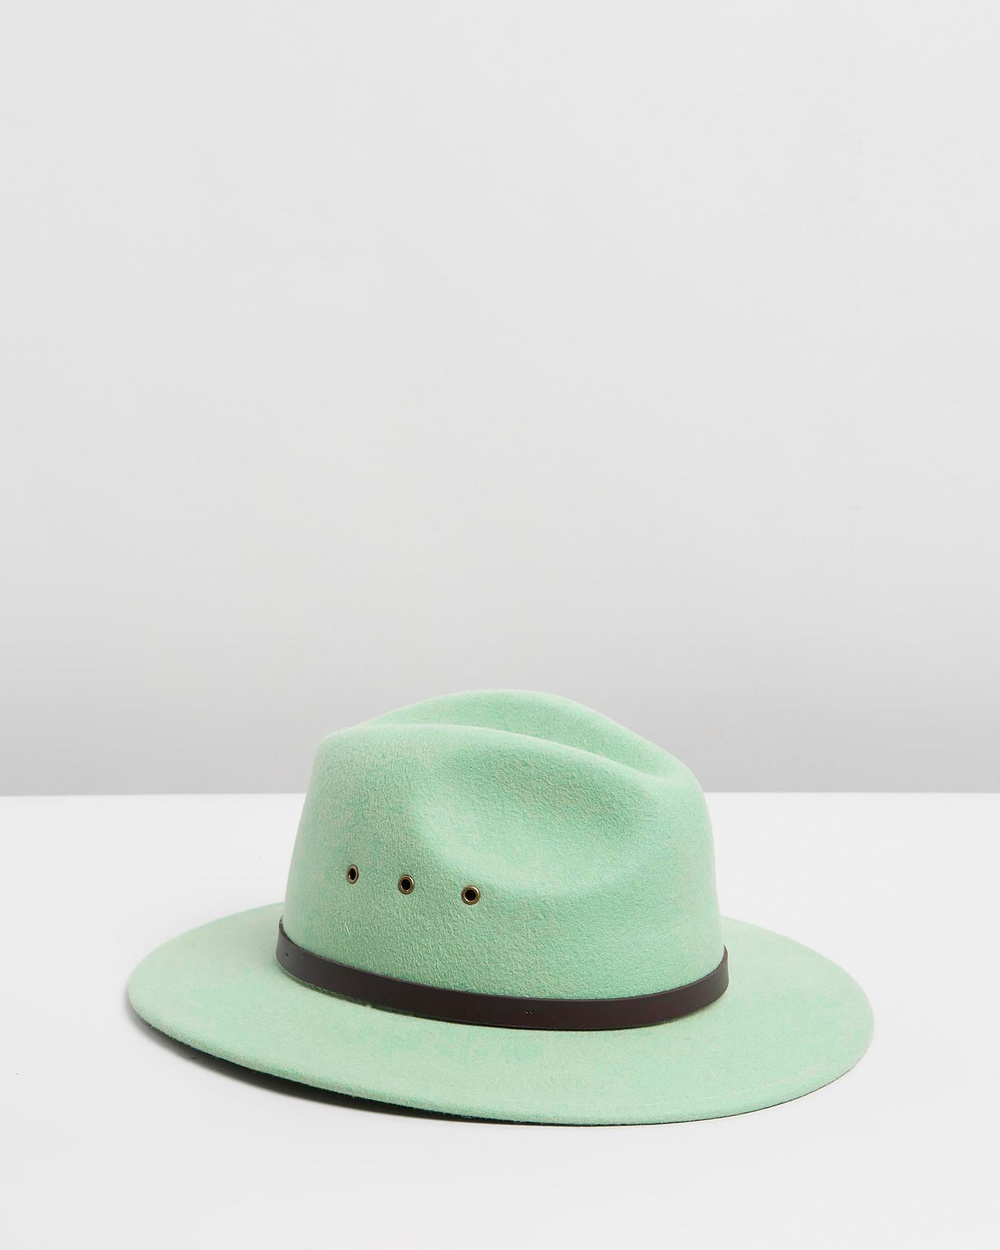 Fallen Broken Street - The Ratatat - Hats (Green) The Ratatat